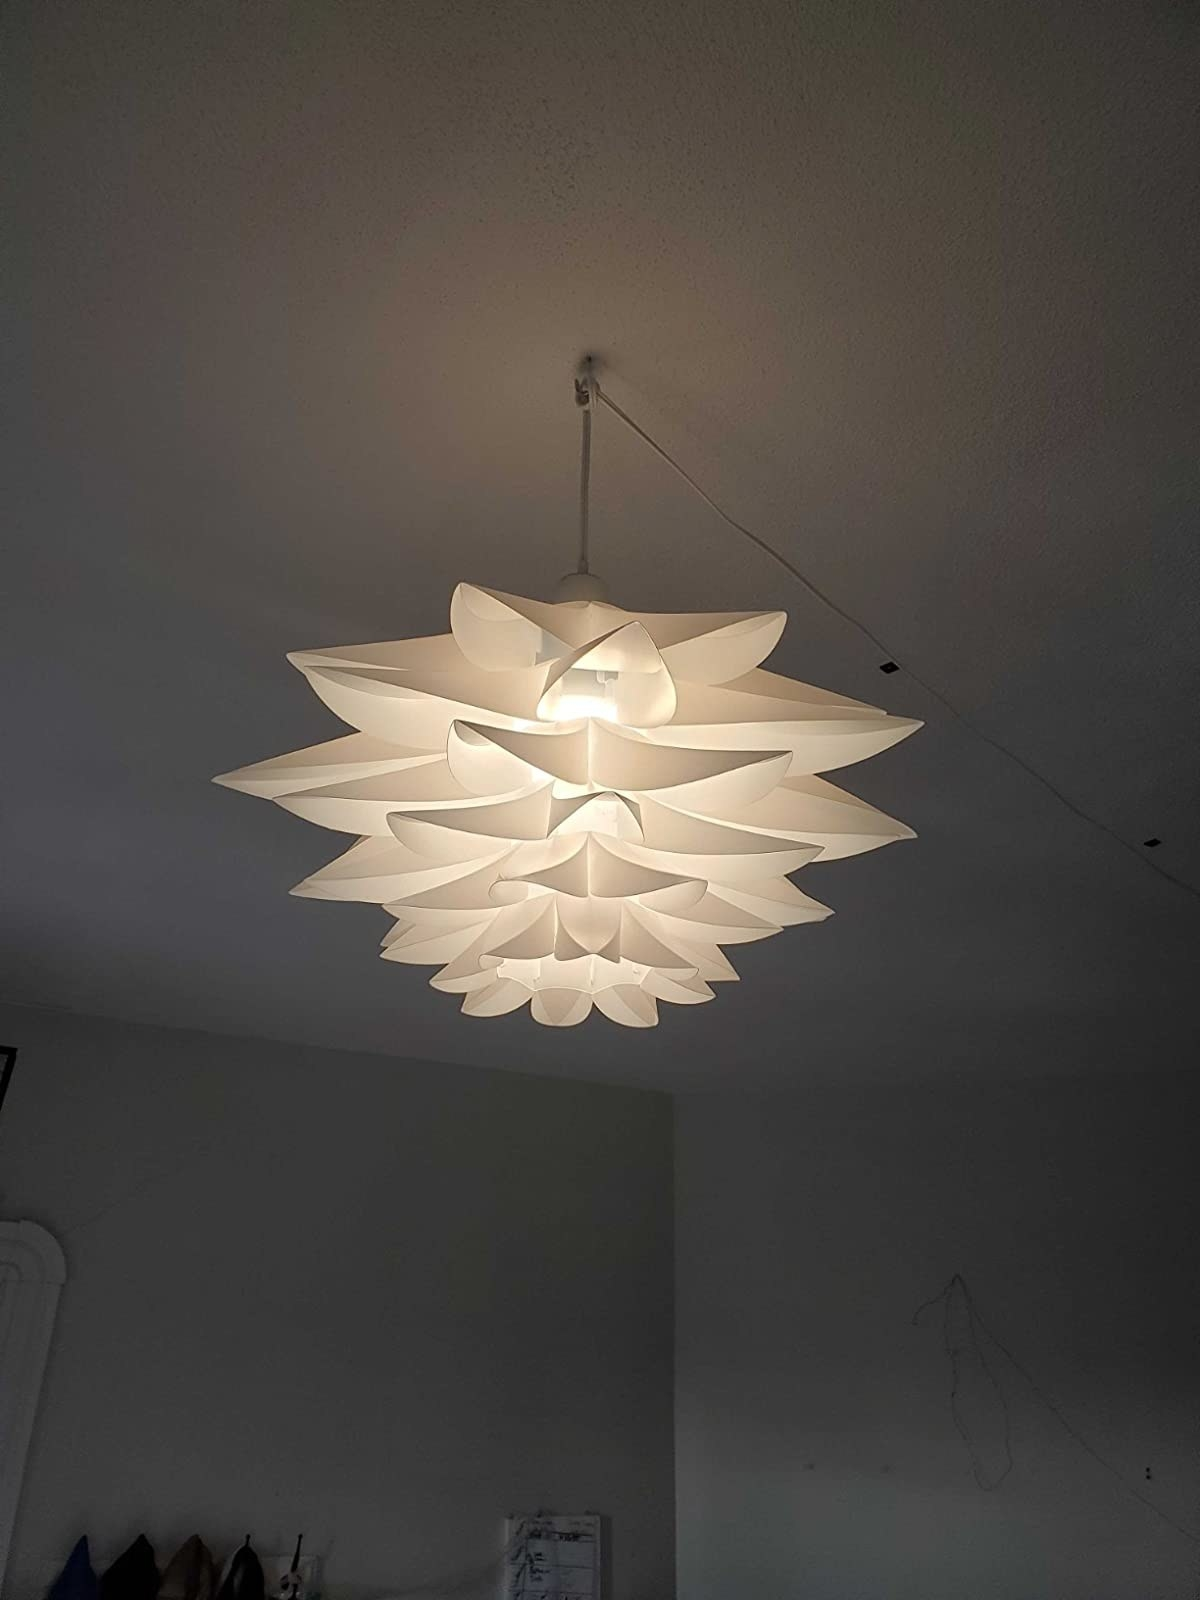 reviewer image of the lotus pendant light hanging from the ceiling